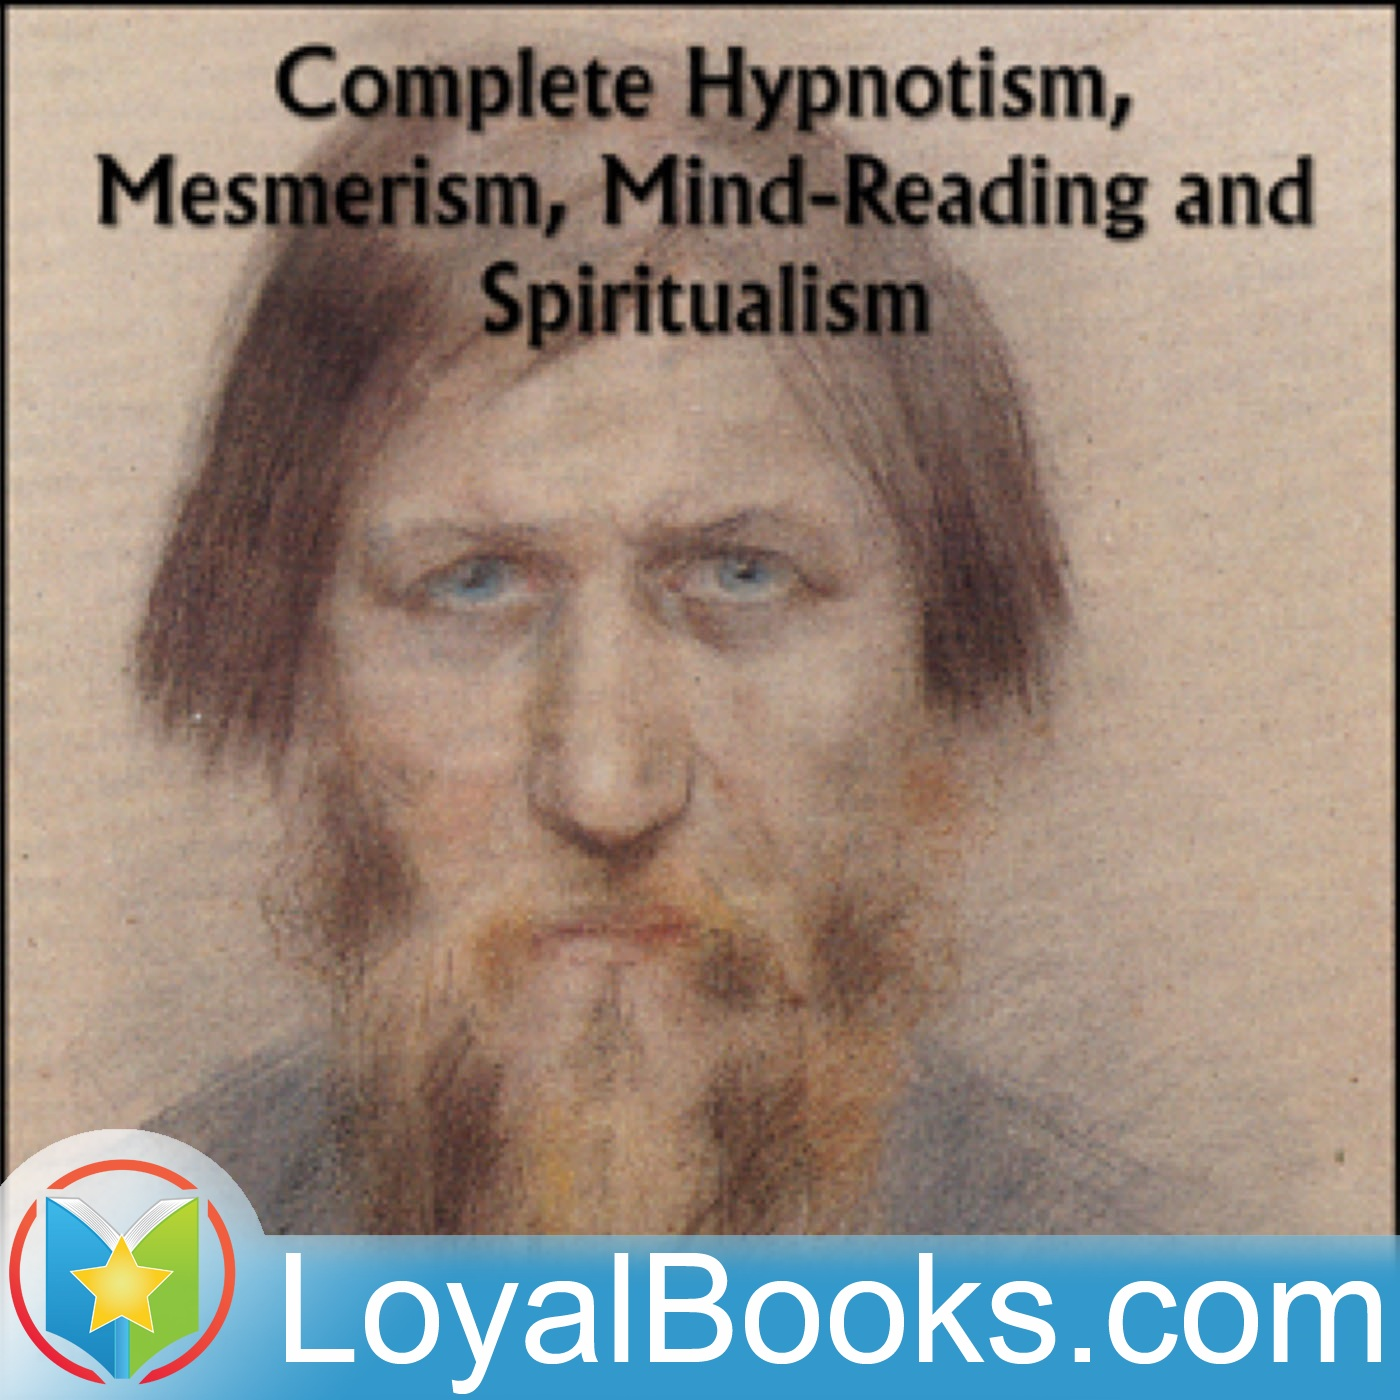 <![CDATA[Complete Hypnotism, Mesmerism, Mind-Reading and Spiritualism by A. Alpheus]]>